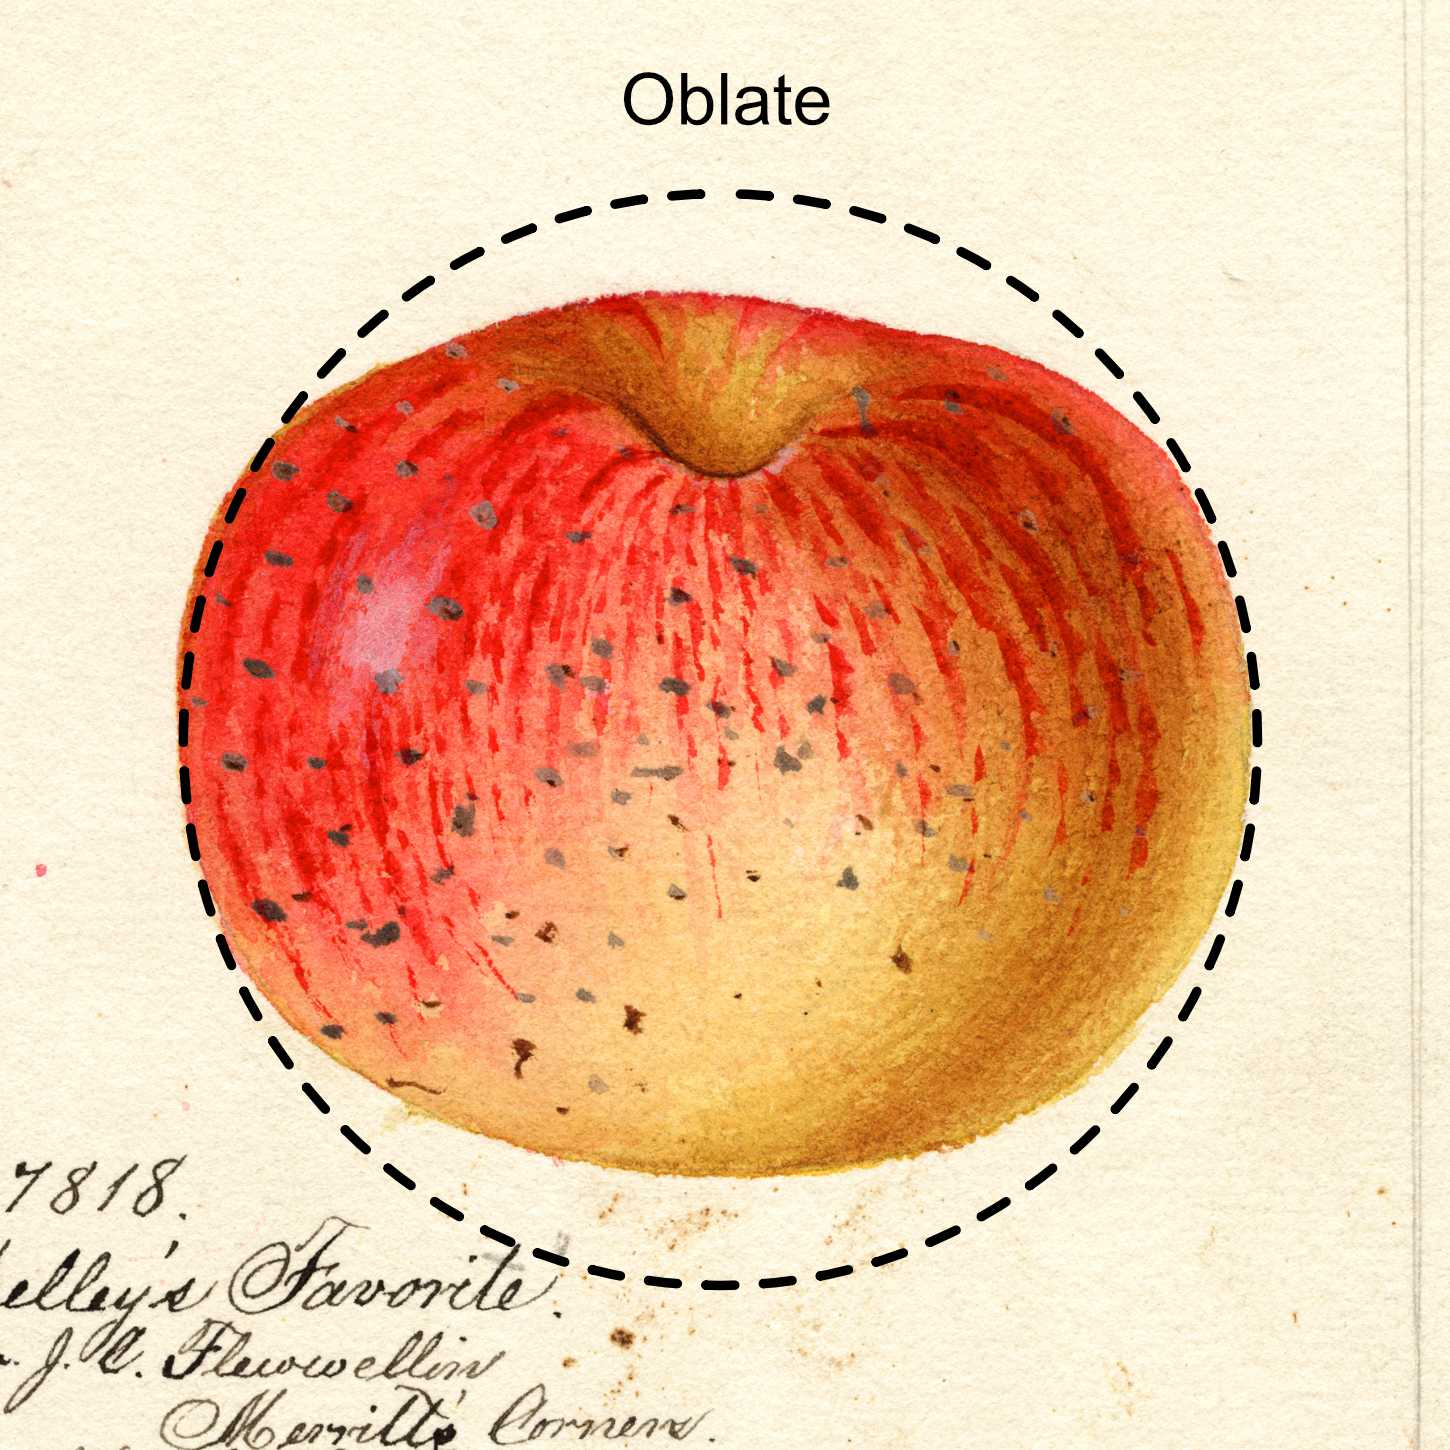 oblate apple -- appears as a flattened circle